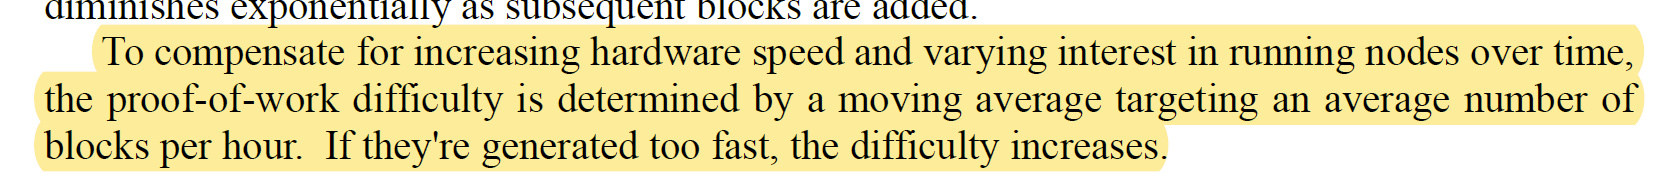 To compensate for increasing hardware speed and varying interest in running nodes over time,  the proof-of-work difficulty is determined by a moving average targeting an average number of blocks per hour. If they're generated too fast, the difficulty increases.